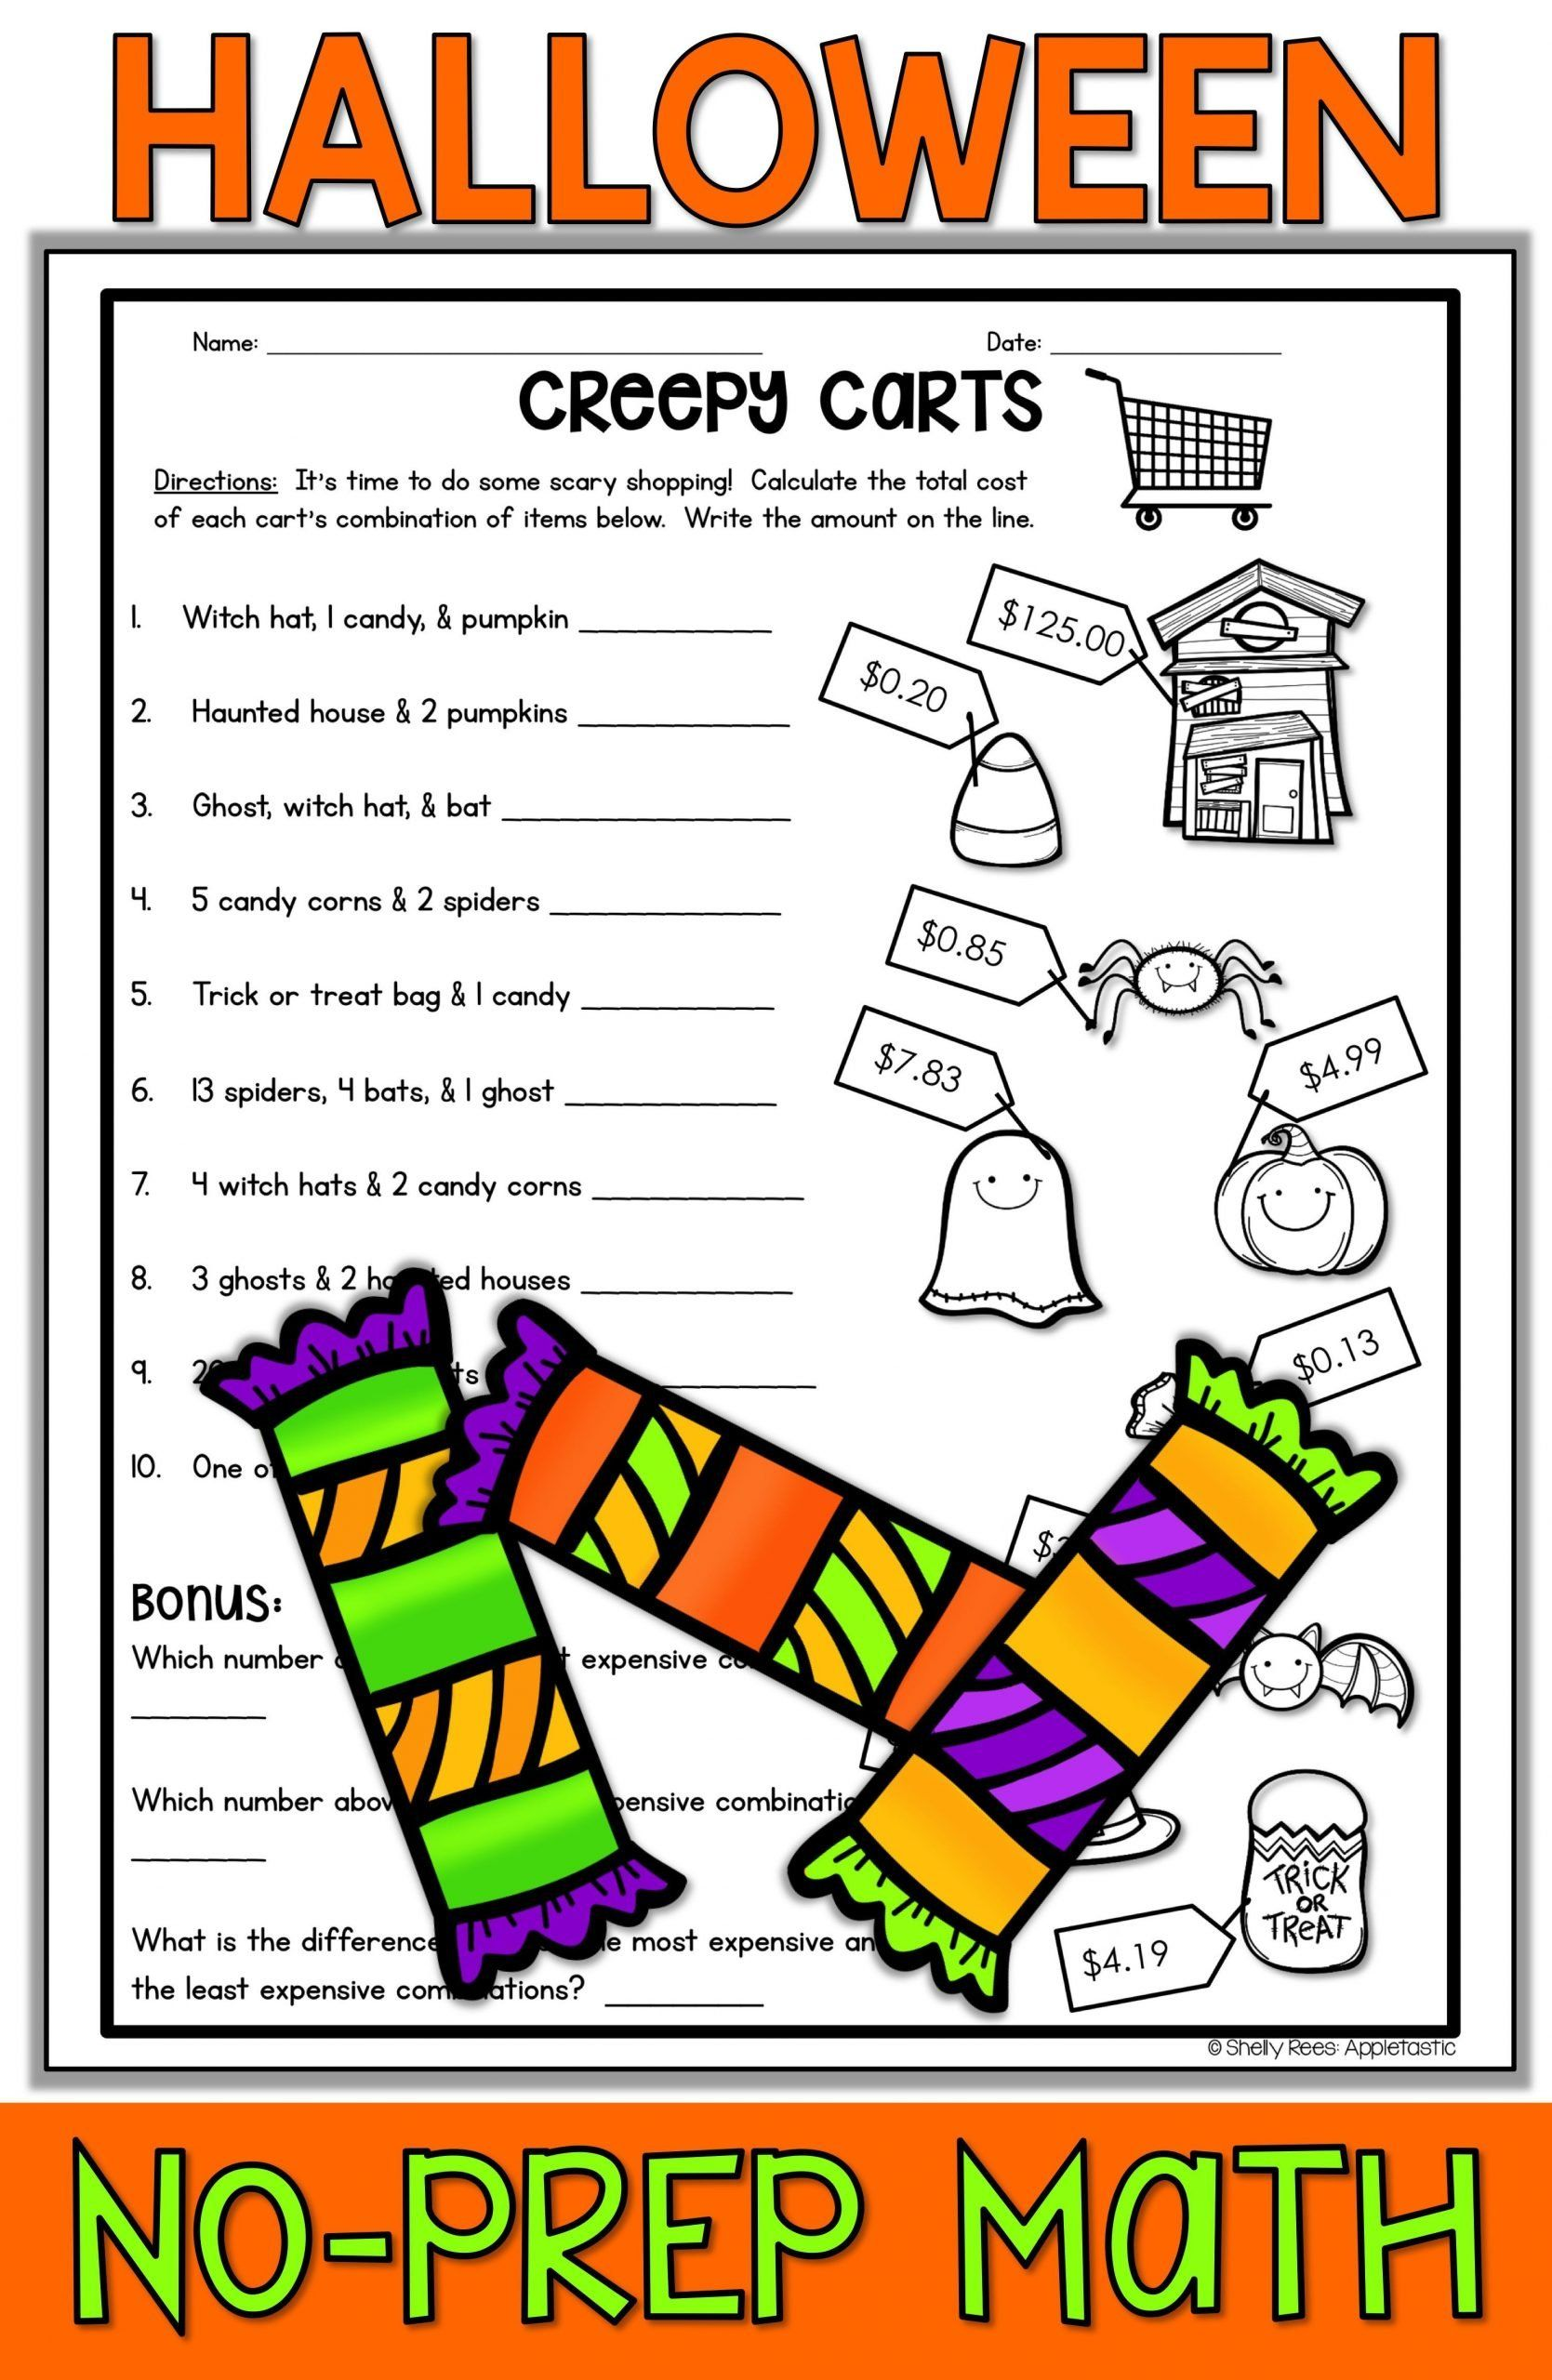 Halloween Maths Worksheets Ks2 Halloween Math Worksheets In 2020 Halloween Math Worksheets Halloween Math Halloween Worksheets